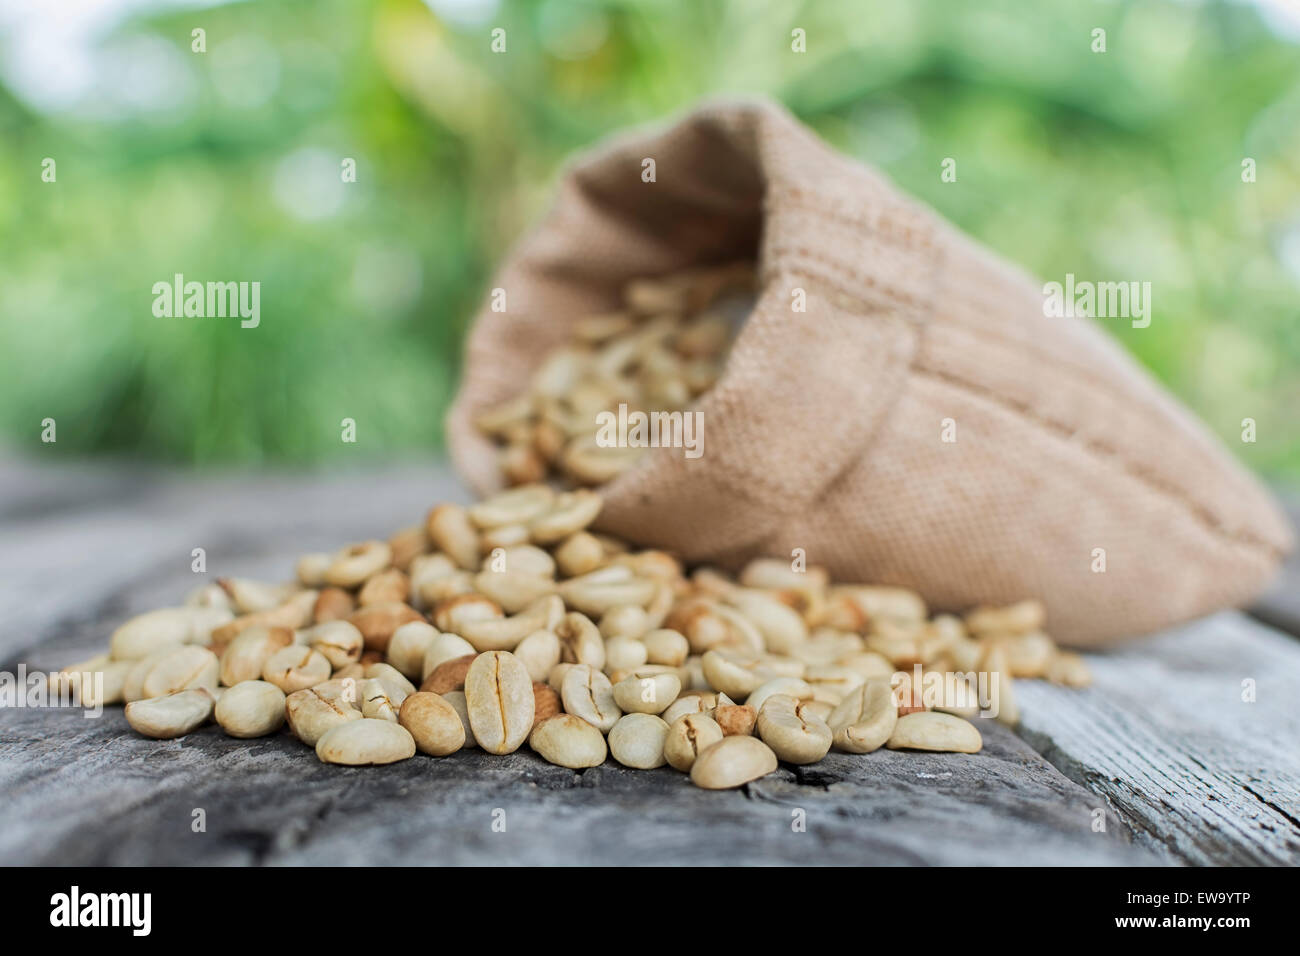 Raw coffee beans on green blurred background. Focus coffee beans front - Stock Image